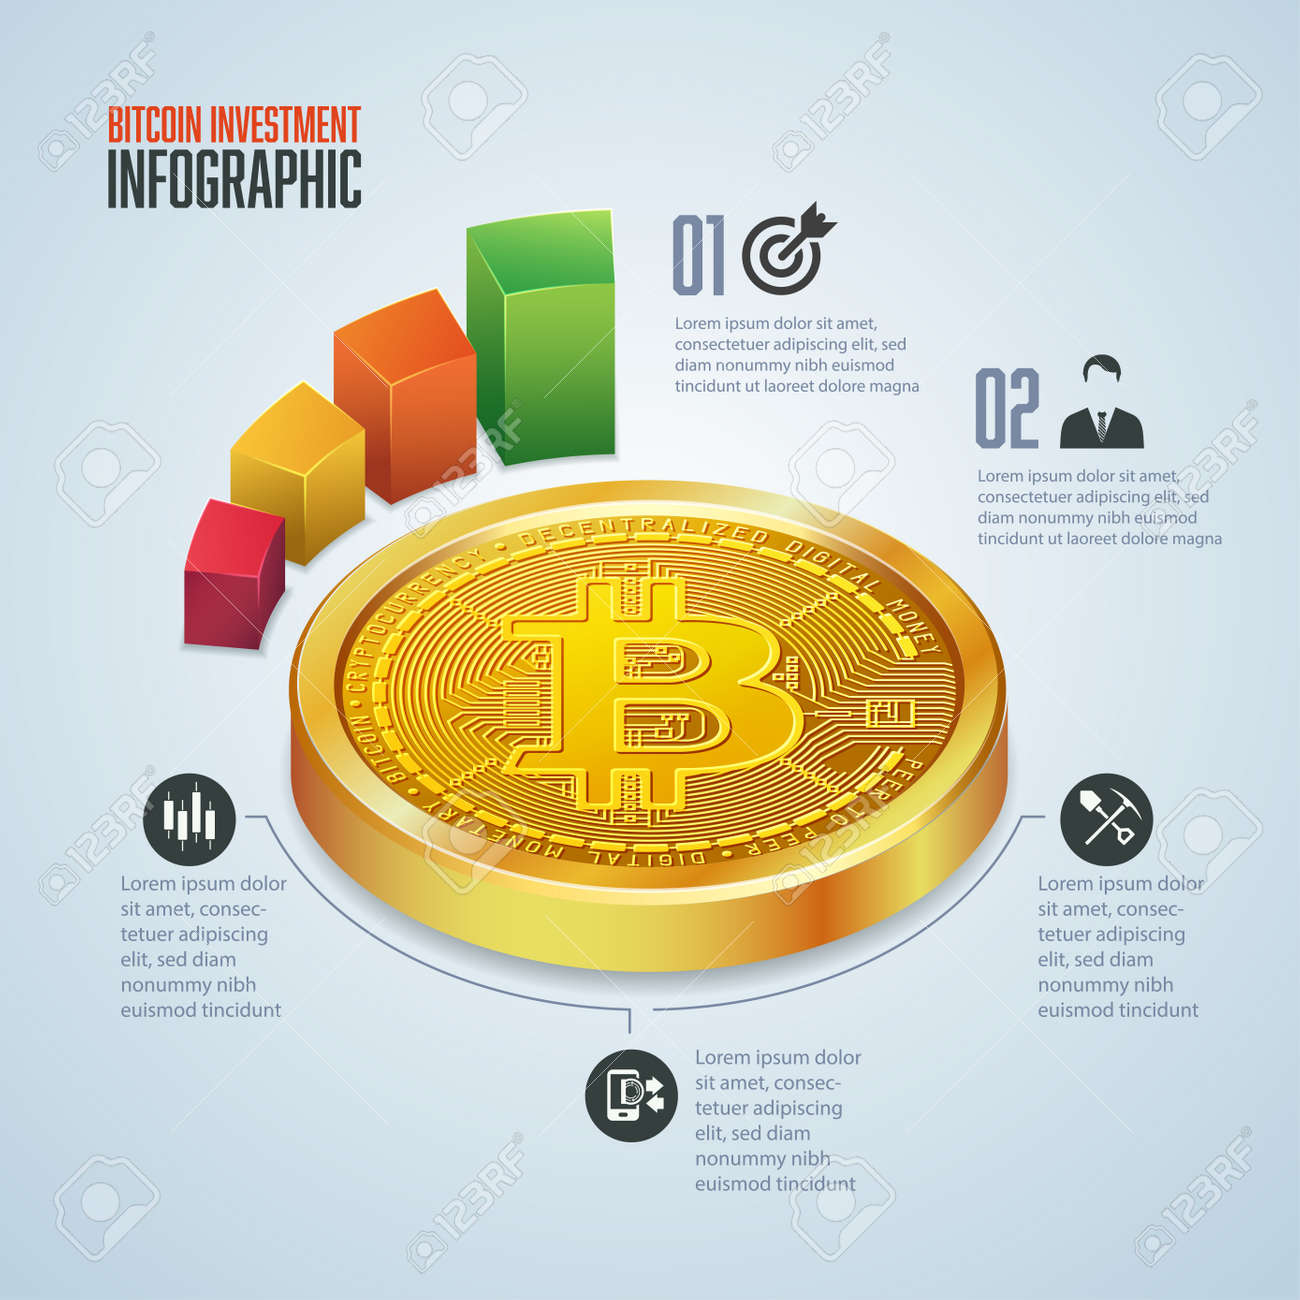 infographic of cryptocurrency invesment, graphic of golden bitcoin in perpective view with financial icons - 171094610